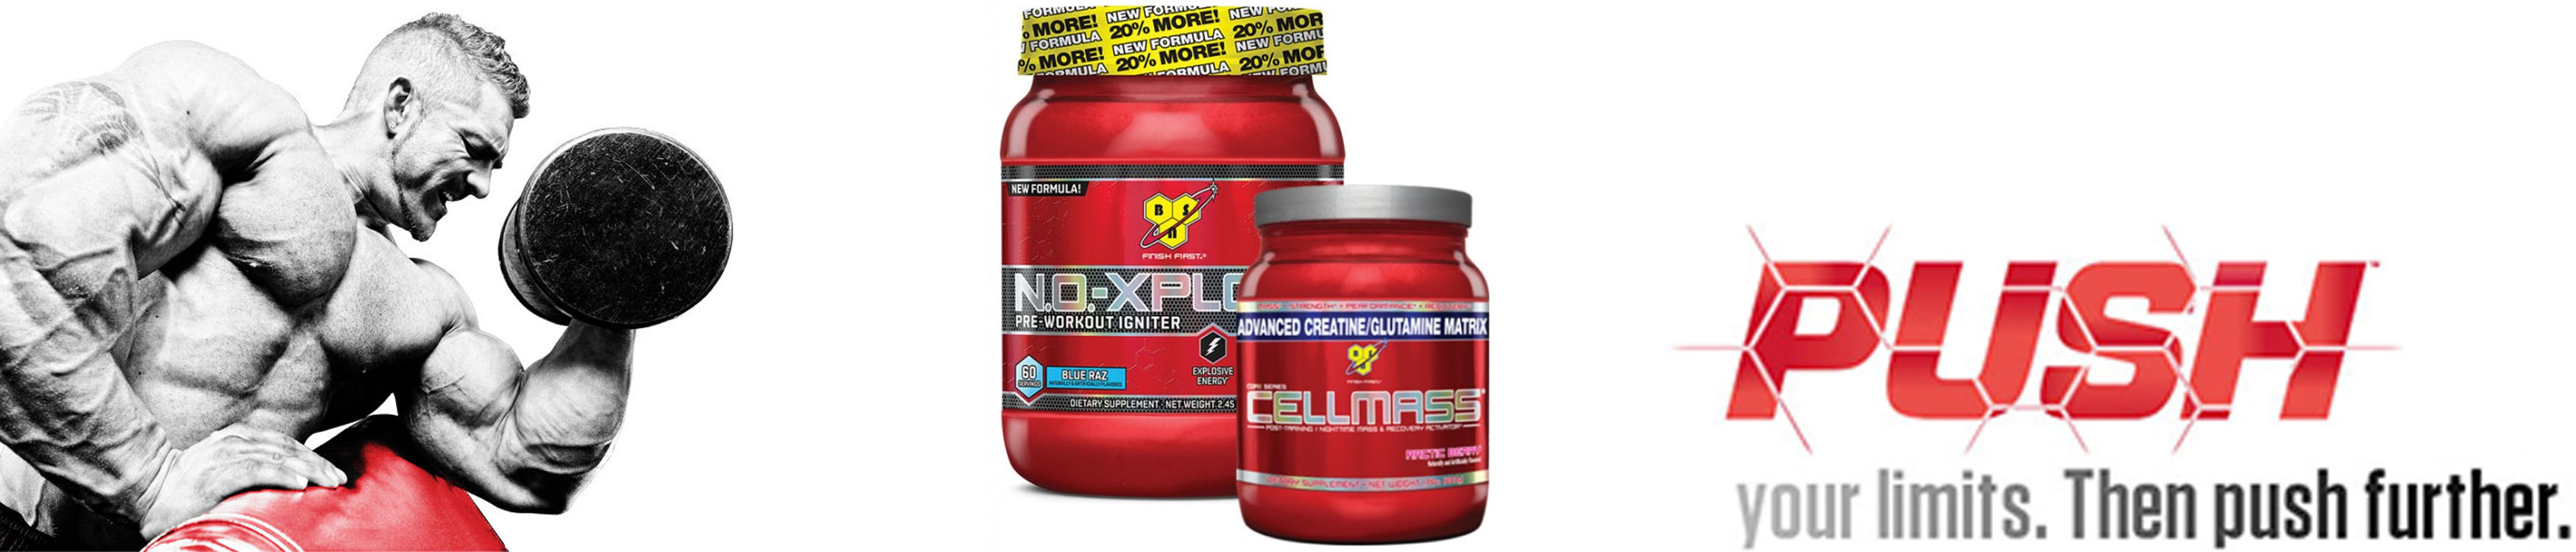 Sports Nutrition Supplement